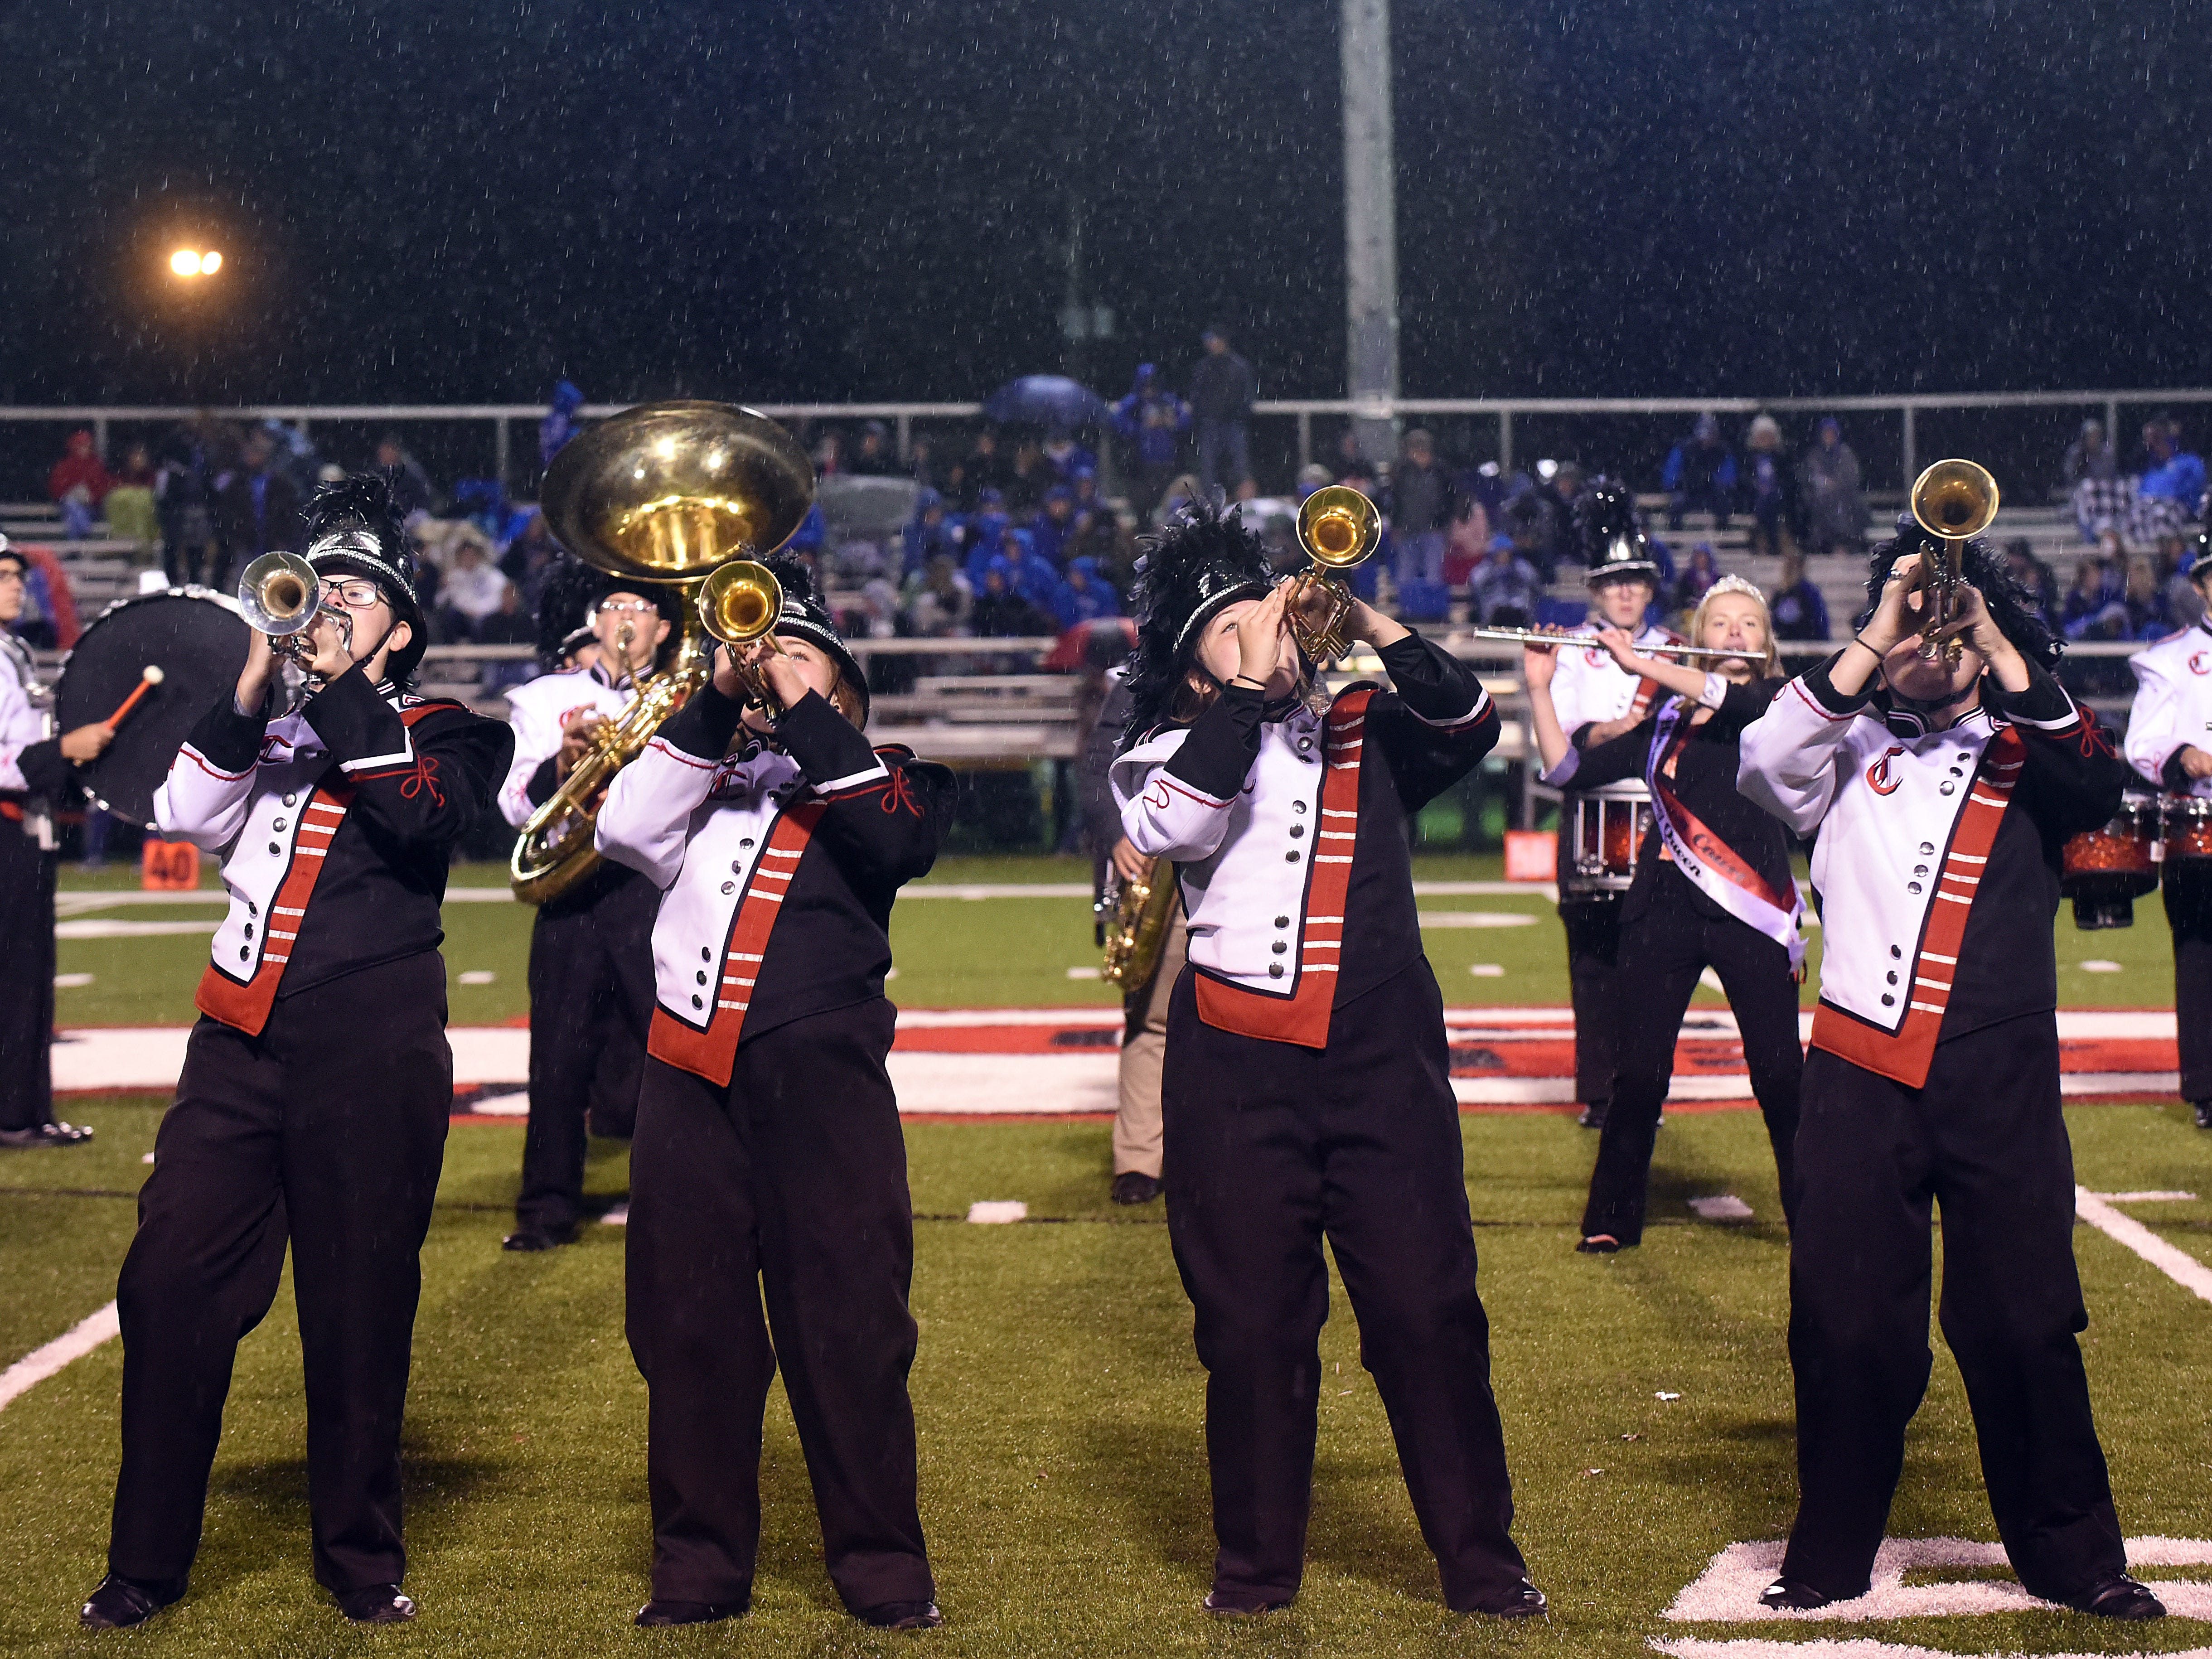 The Coshocton marching band performs during a rainy halftime on Friday, Oct. 12, 2018.